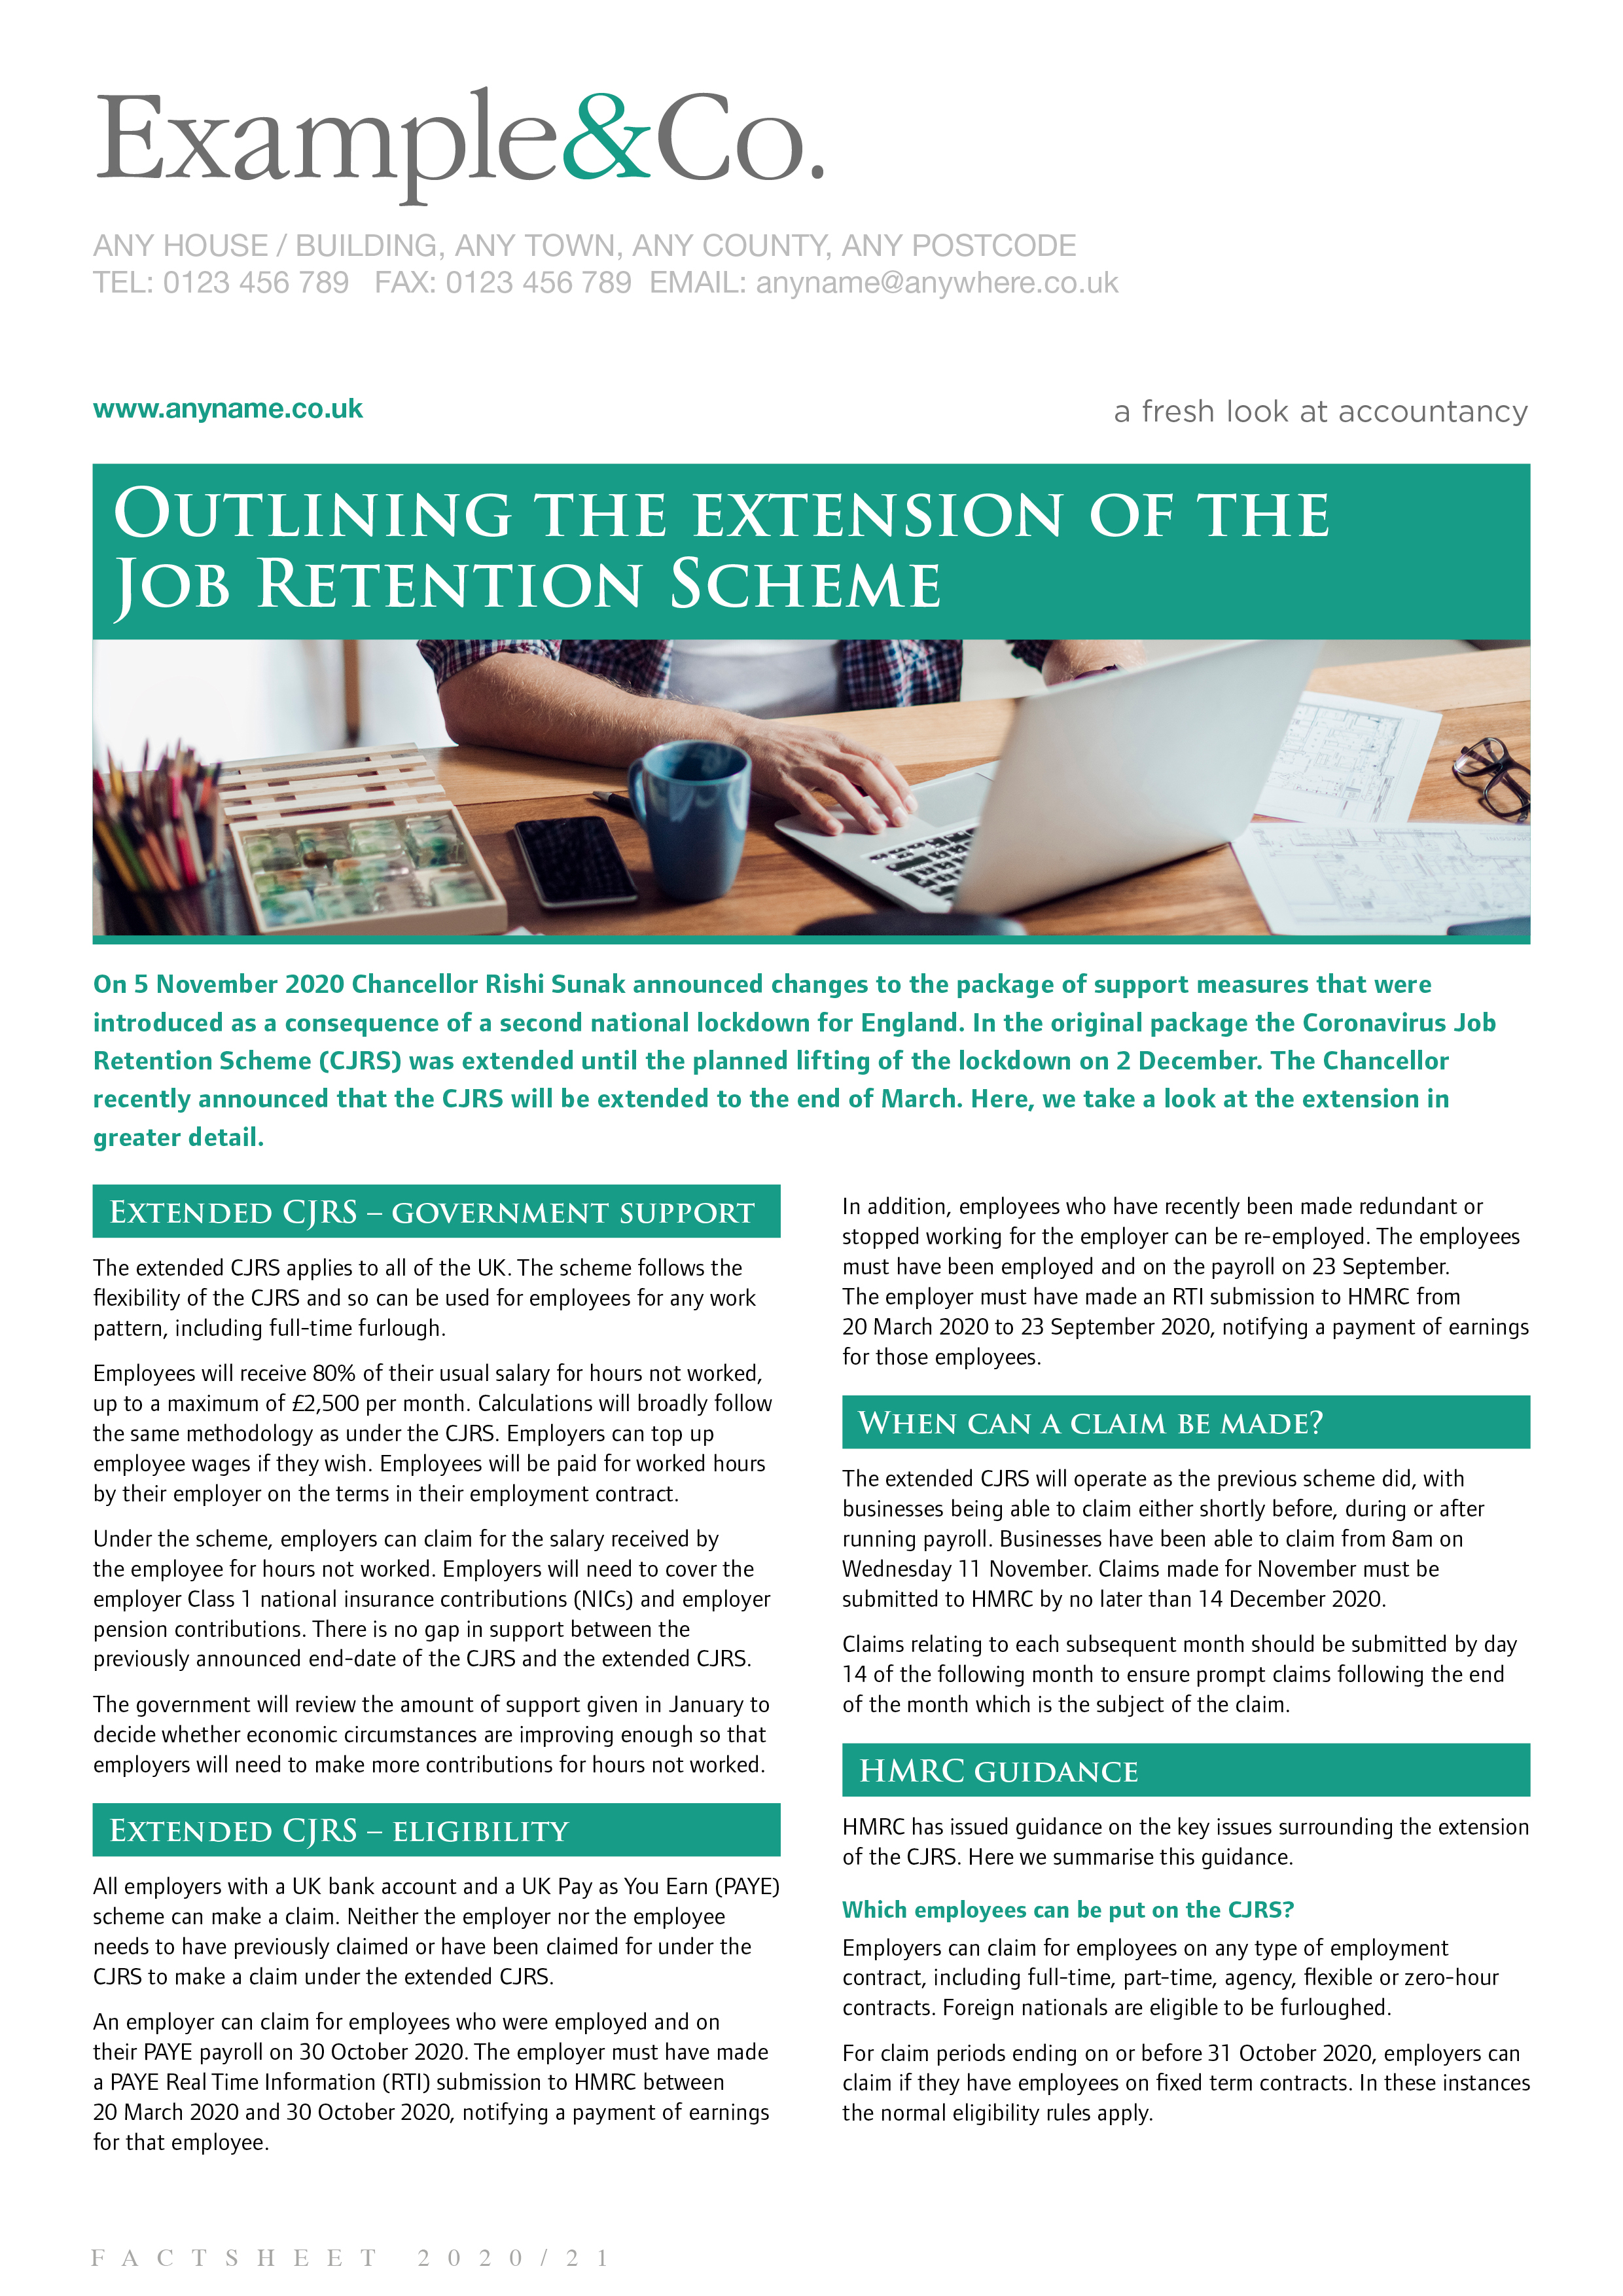 Outlining the extension of the Job Retention Scheme